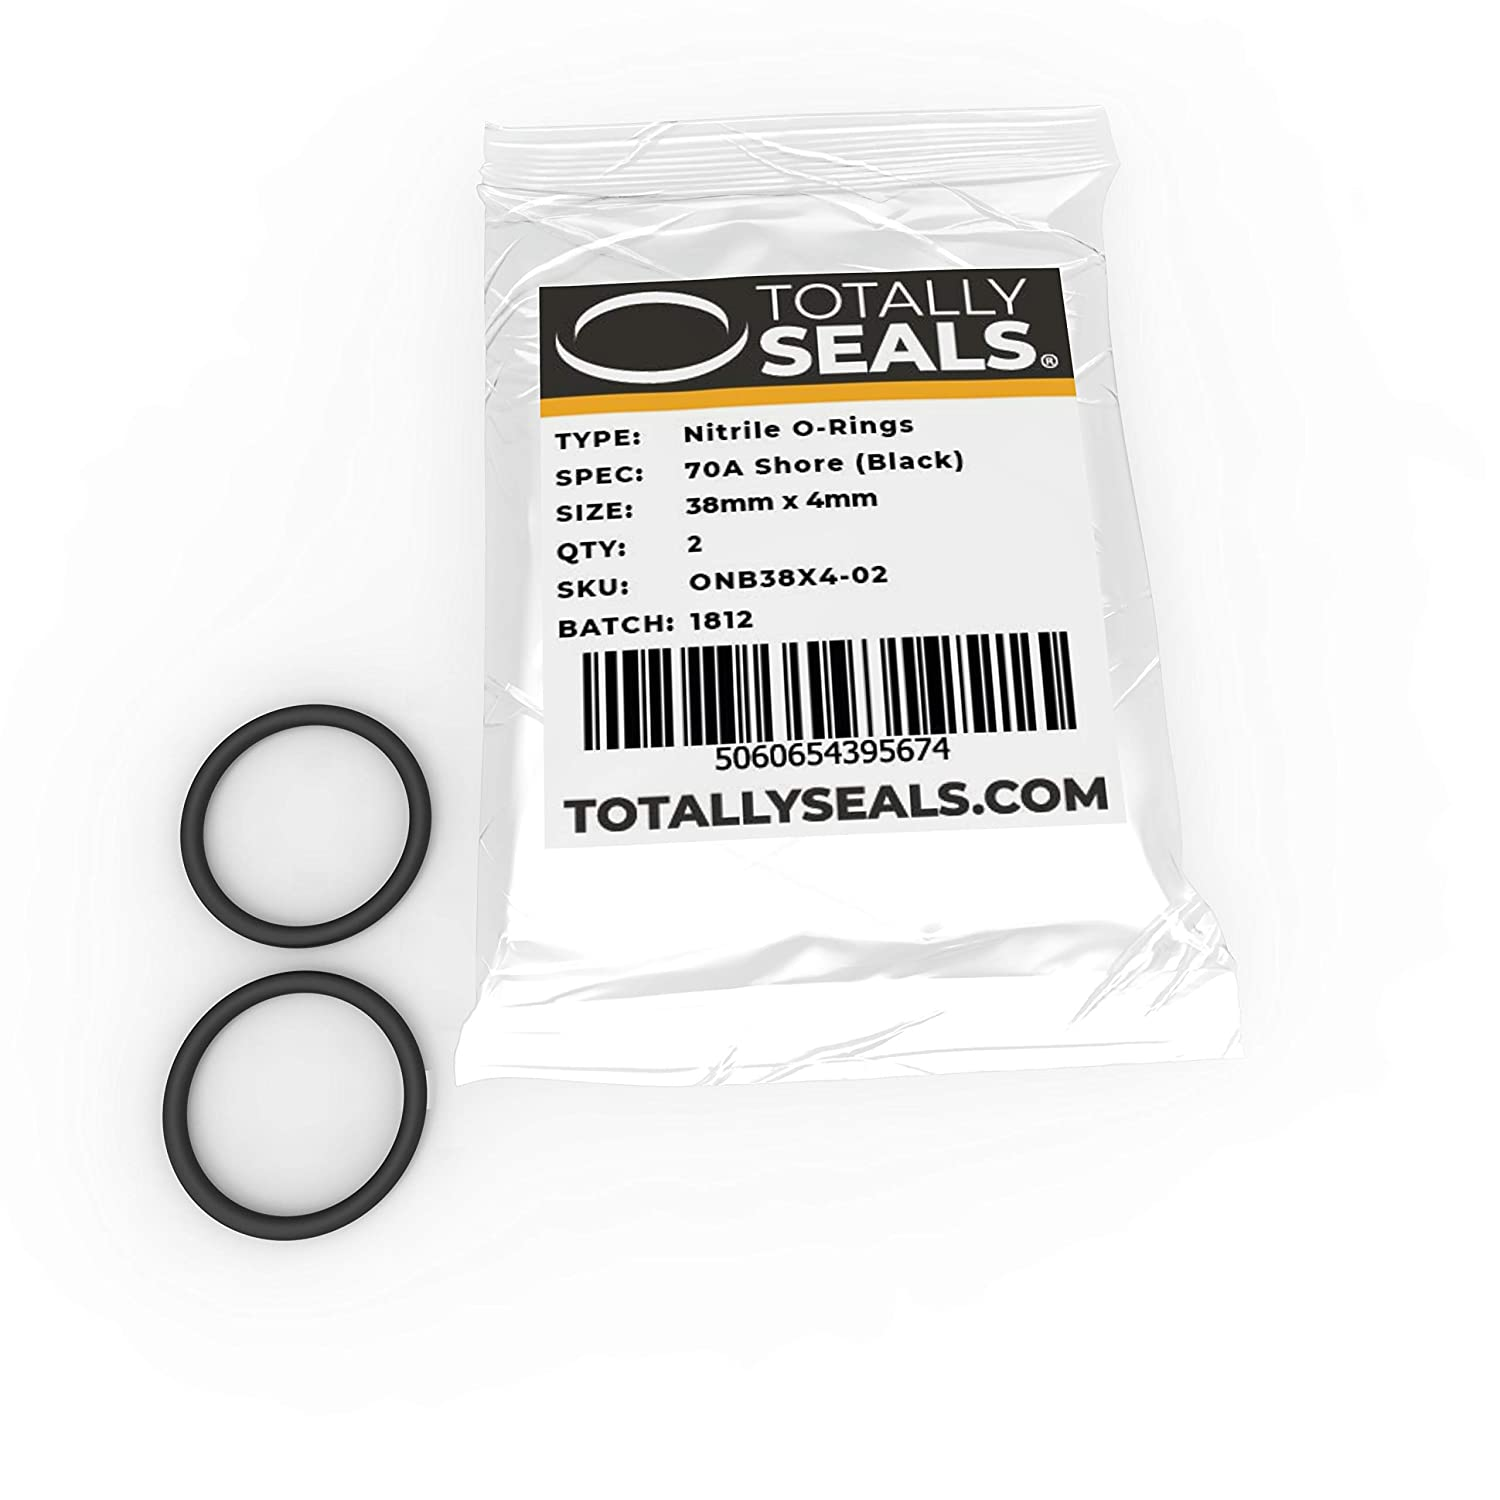 38mm x 4mm (46mm OD) Nitrile Rubber O-Rings 70A Shore Hardness - Pack of 10